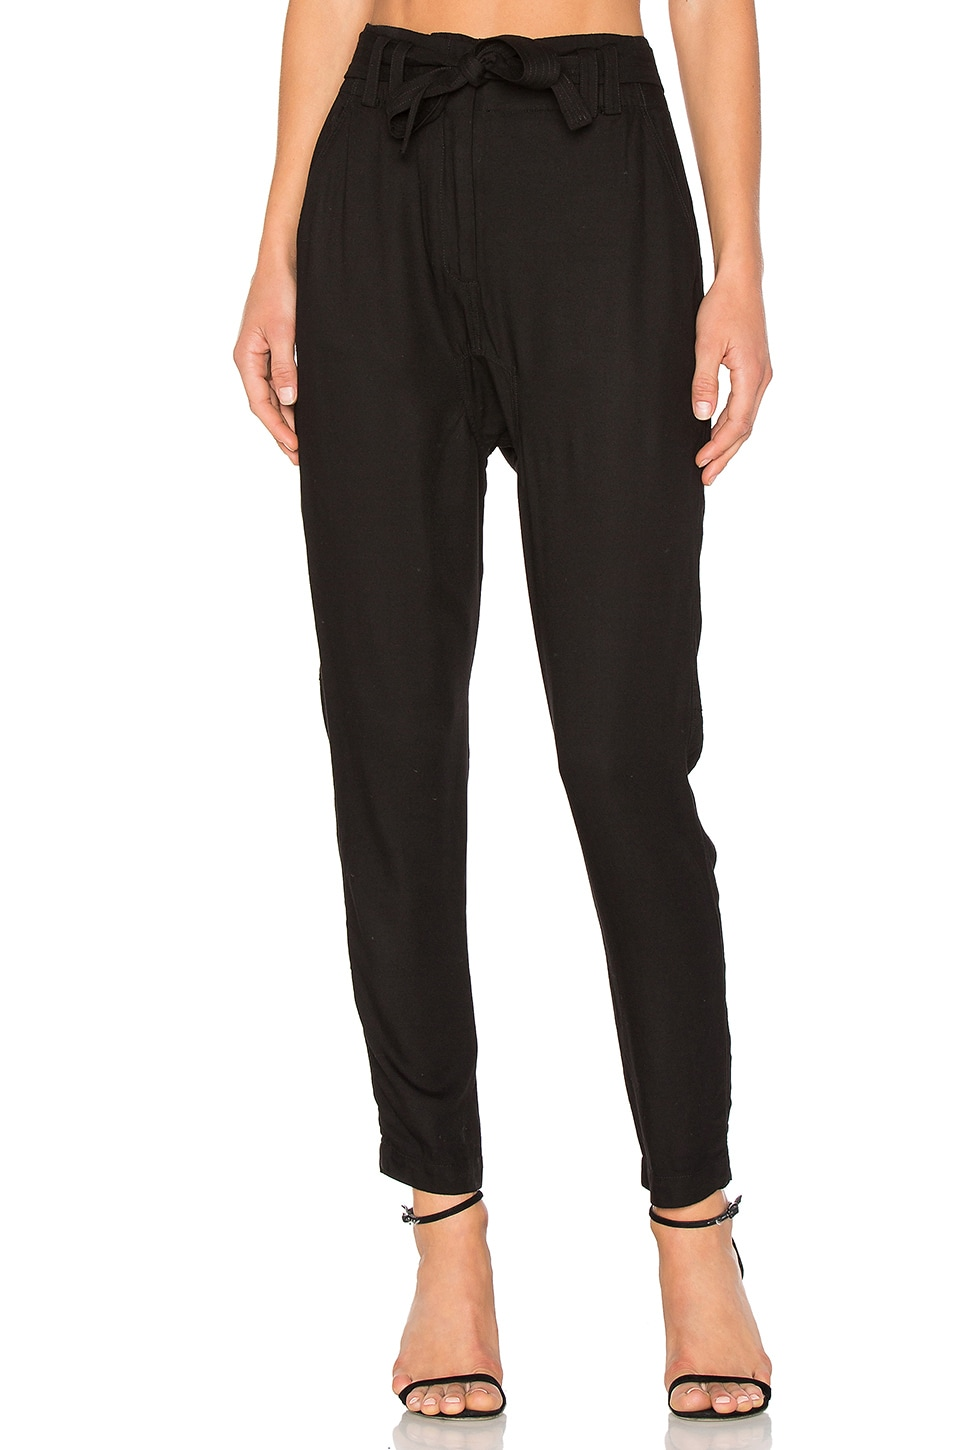 A.L.C. Ansel Pants in Black